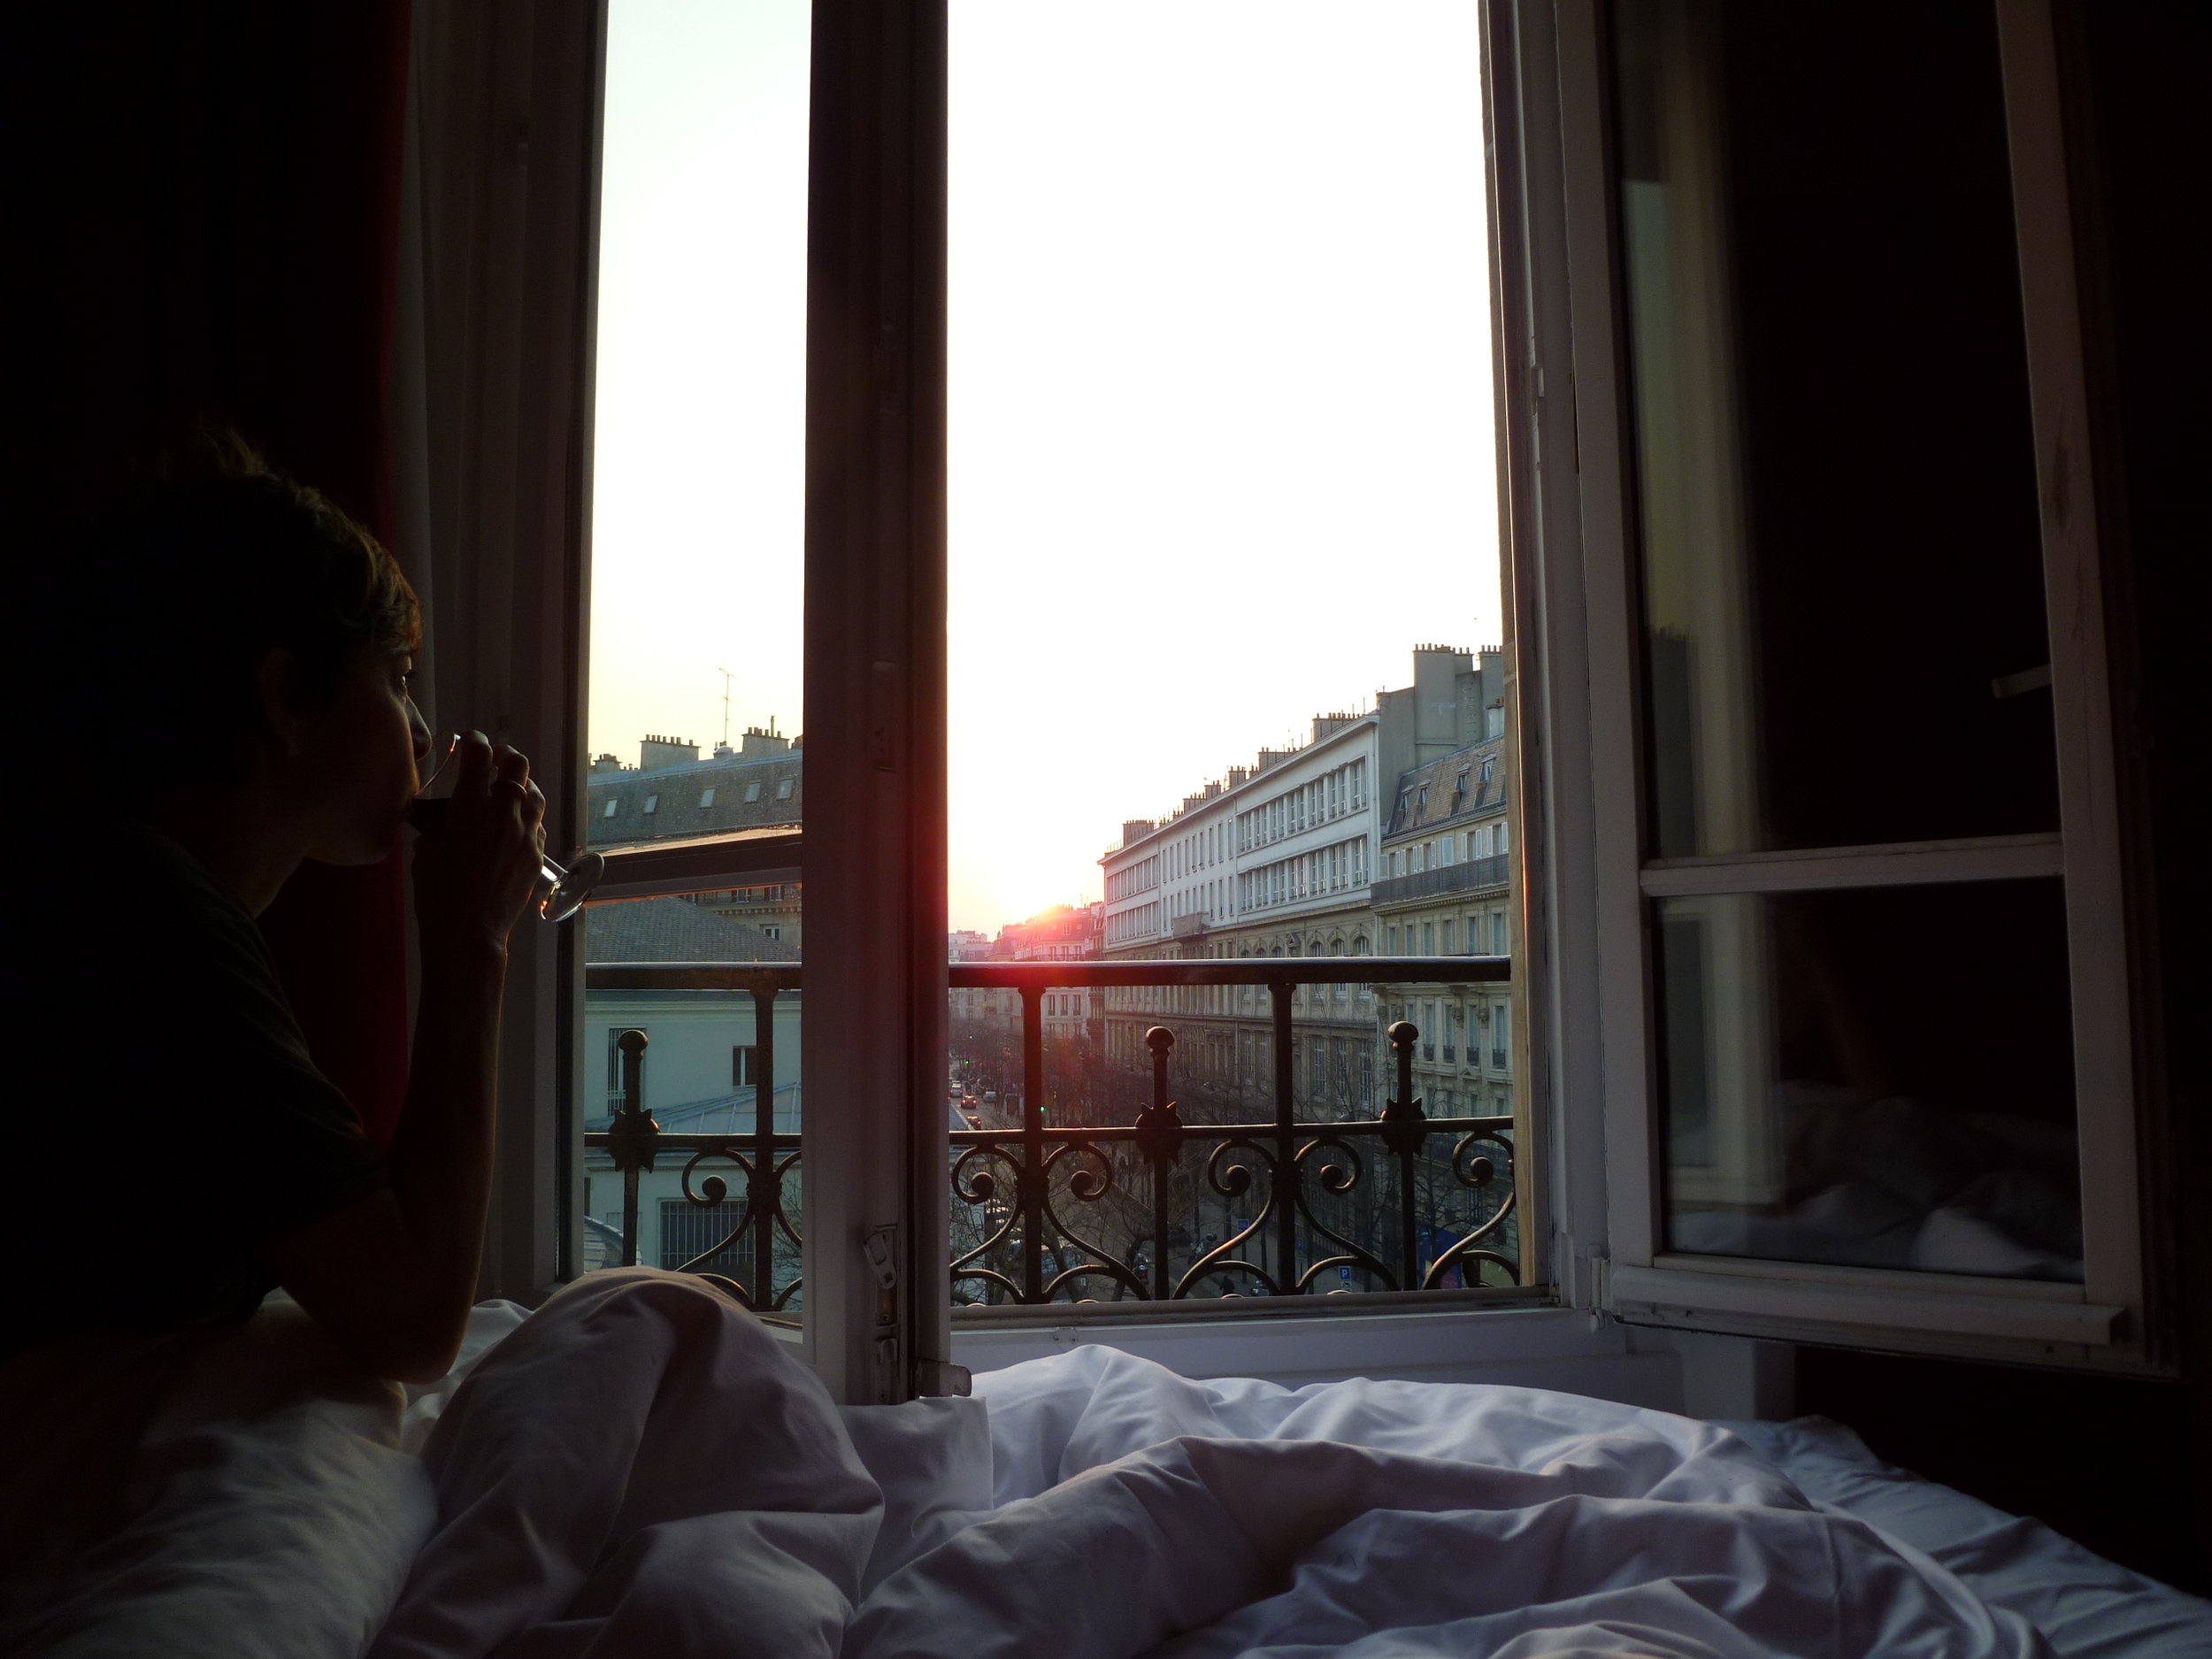 This is a picture I took of Annie Costello Brown at the Paris France Hotel in the Marais.